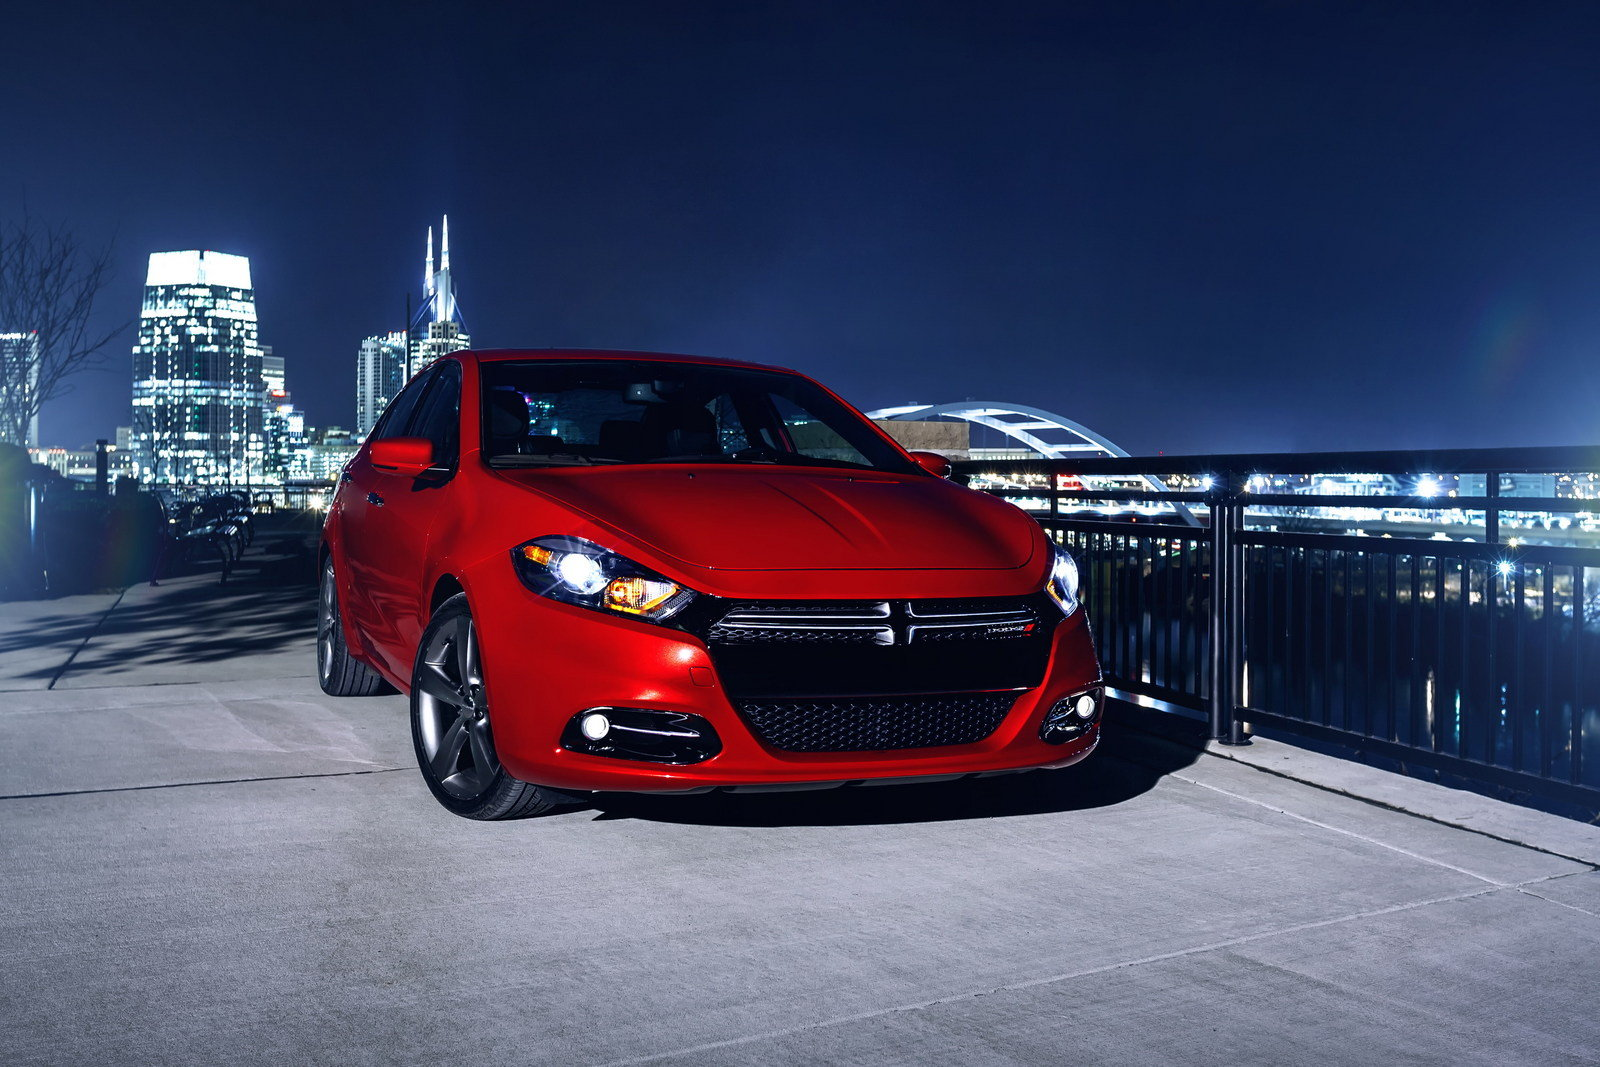 Dodge Cars For Sale >> 2013 Dodge Dart GT Review - Top Speed